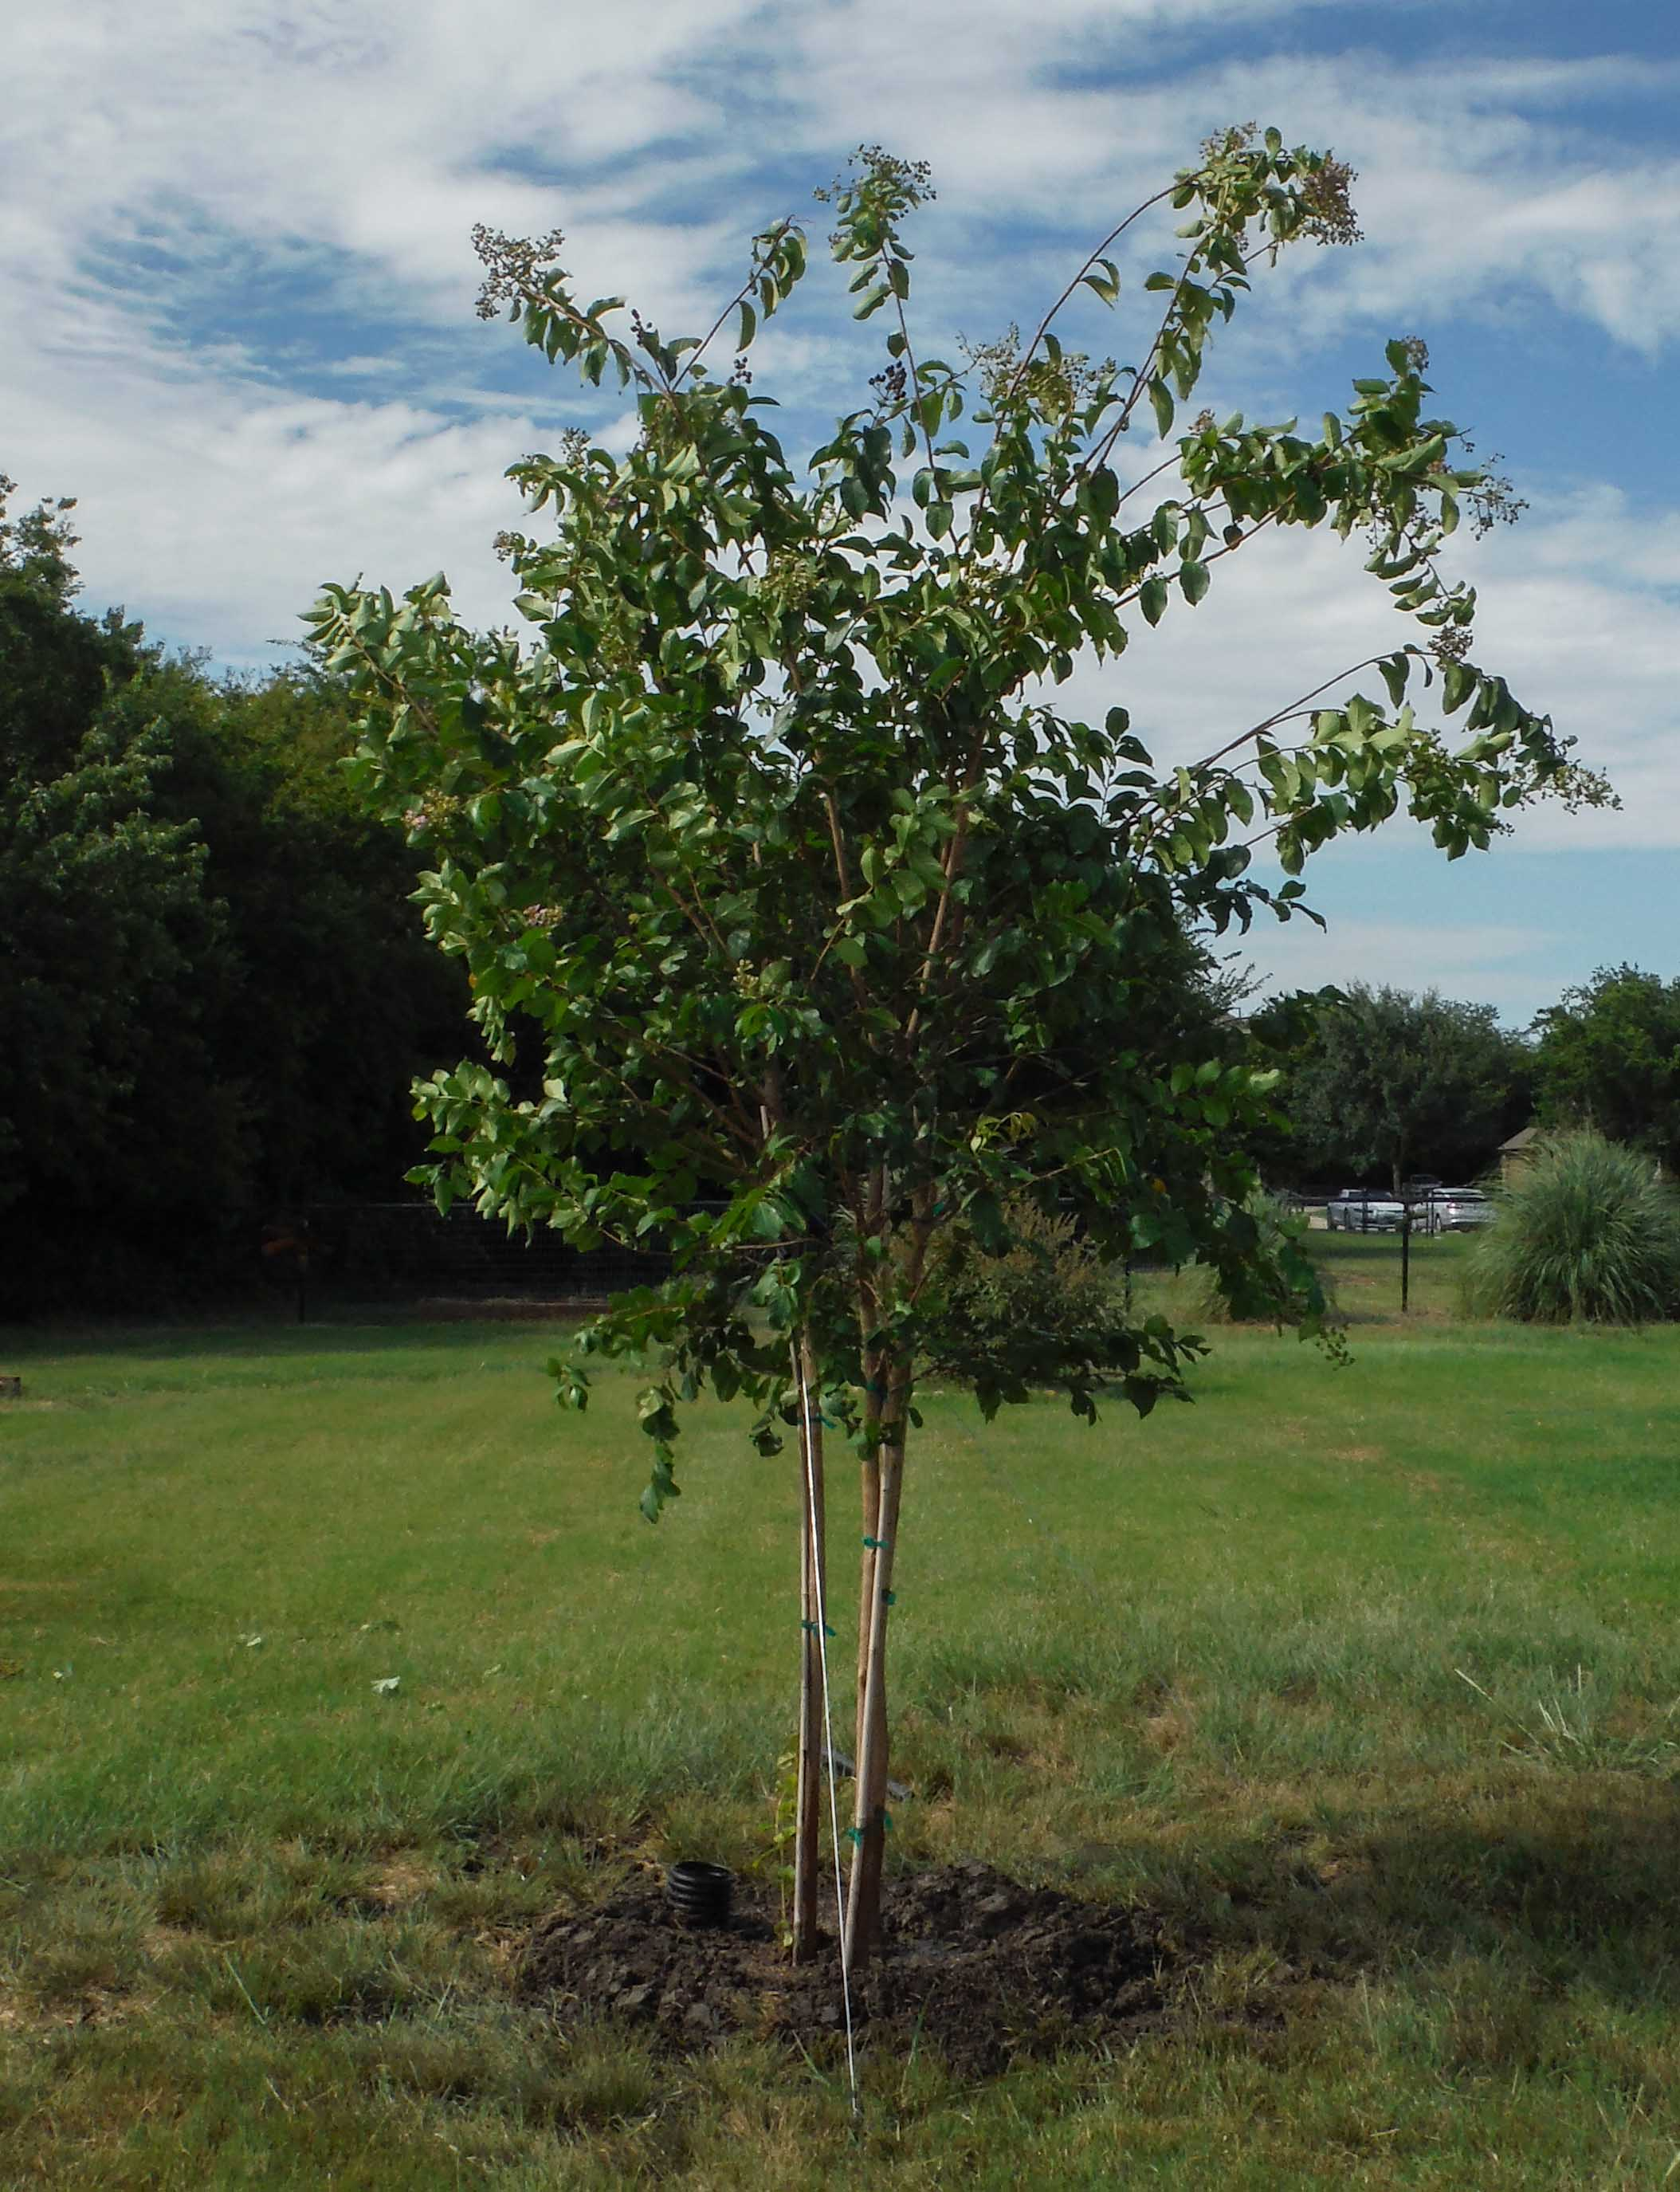 Muskogee Crape Myrtle installed by Treeland Nursery.